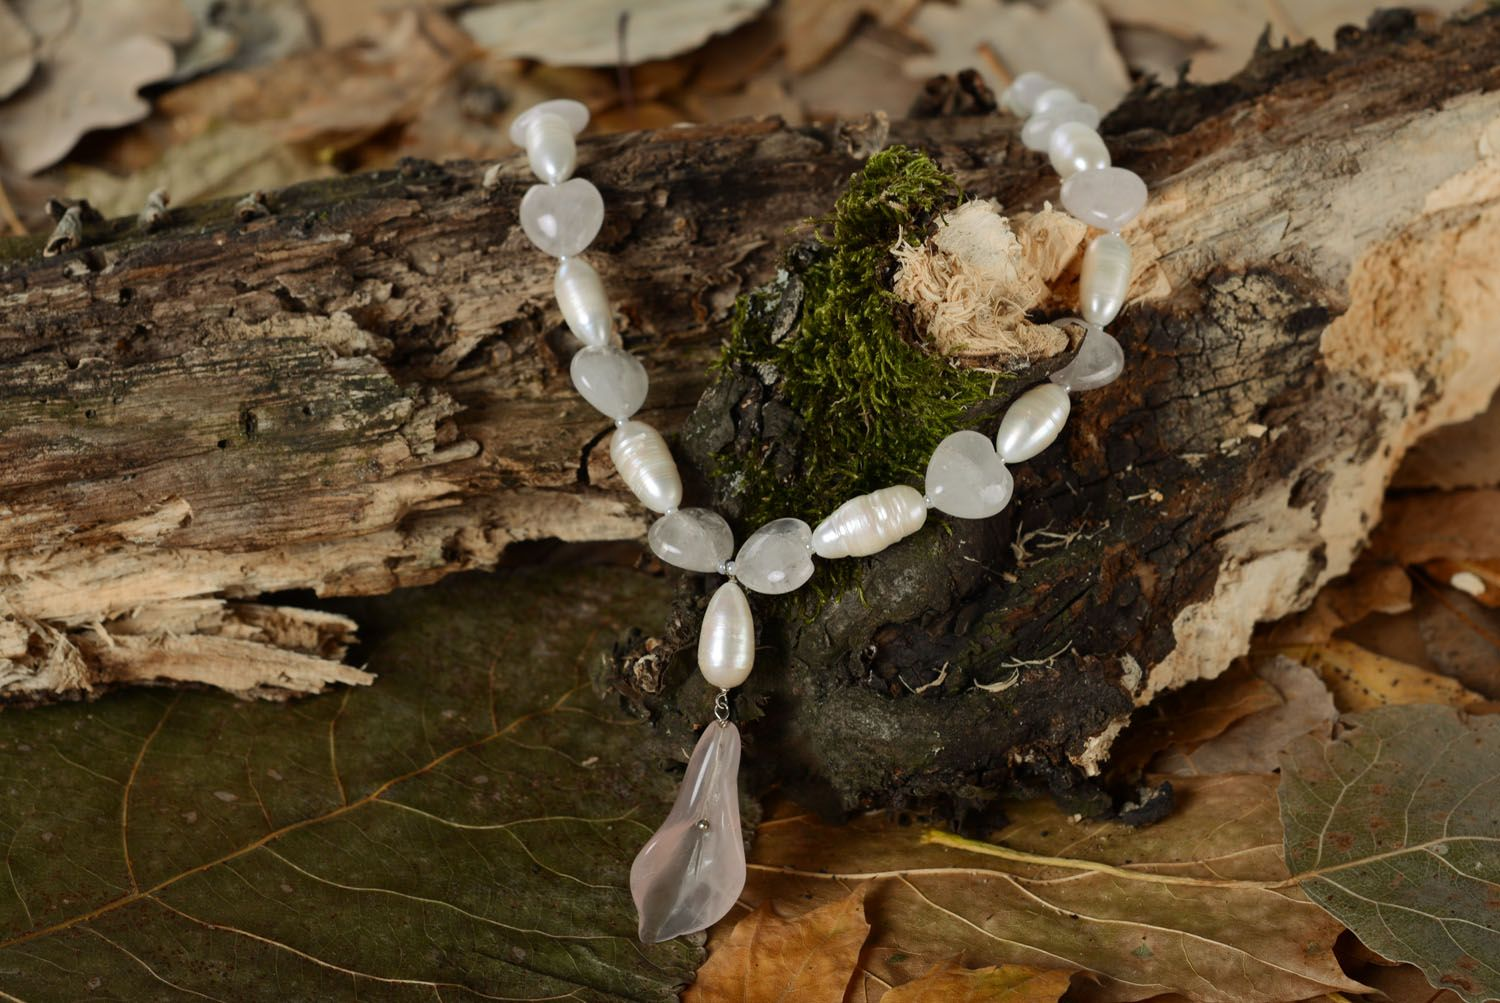 Designer's necklace made of natural stone photo 1